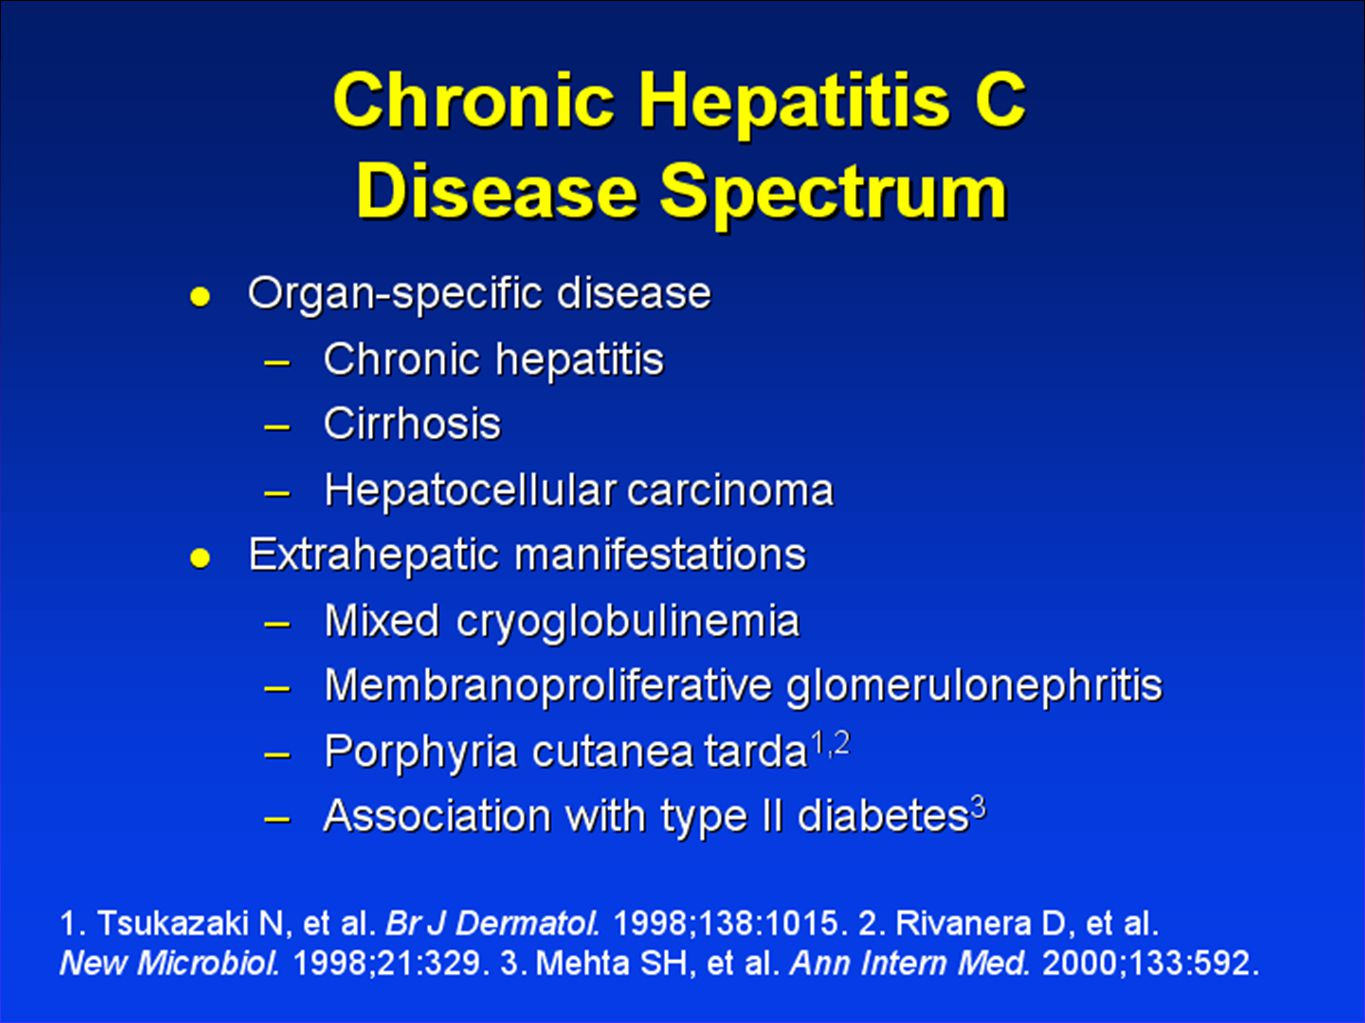 Extrahepatic ManifestationsCondition Relative Frequency Mixed Cryoglobulinemia 36-45% 1 Porphyria Cutanea Tarda 62-82% 2 Renal Failure (MPGN, membranous GN, GN associated with mixed cryoglobulinemia) Uncertain; suggestion of up to 27% 3 Cognitive Dysfunction 9-38% 4 1.